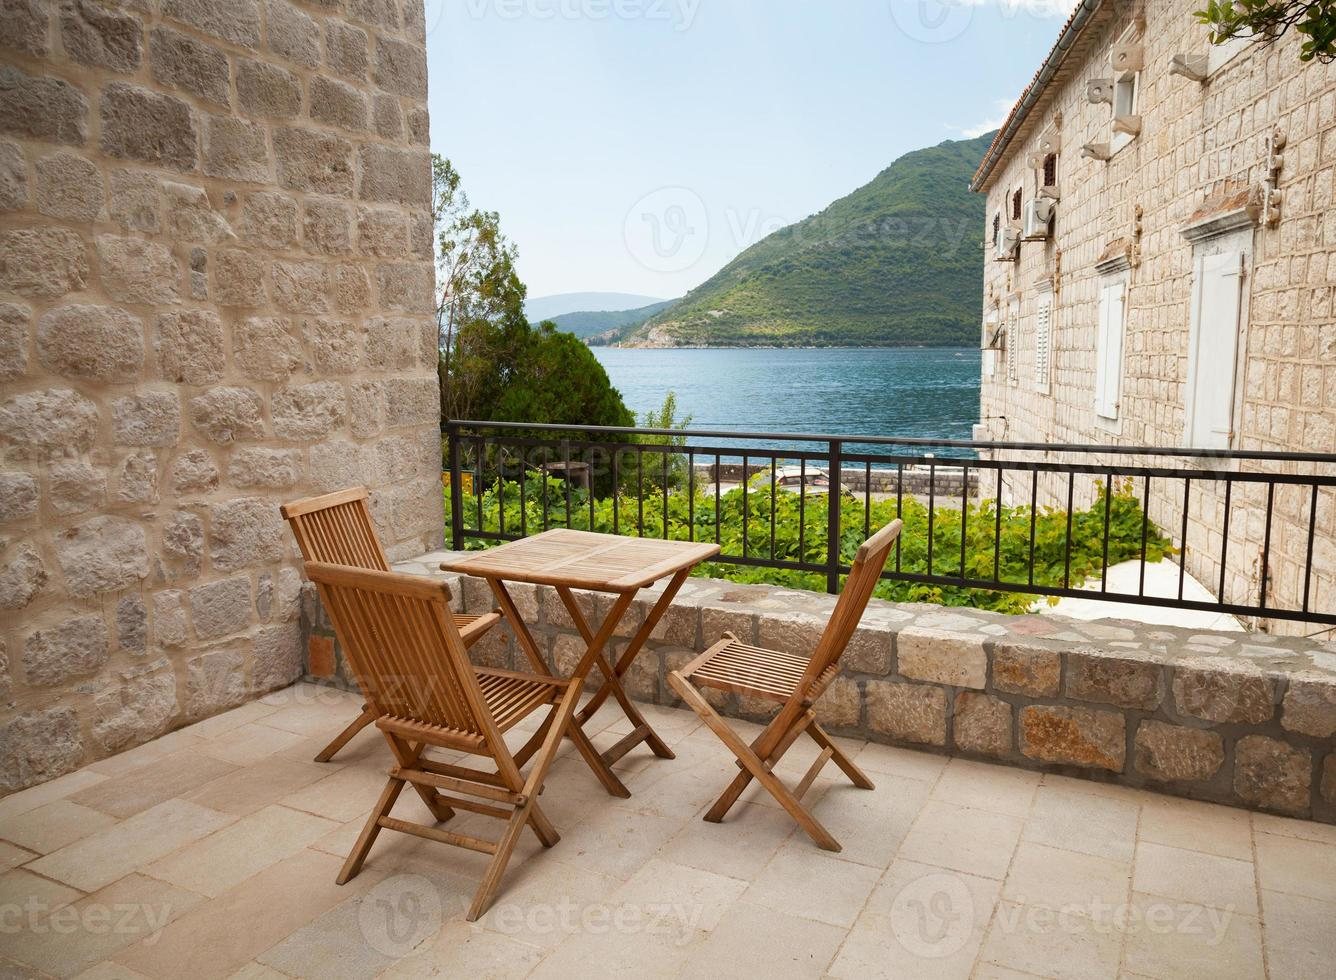 Wooden chairs and table on open seaside terrace photo